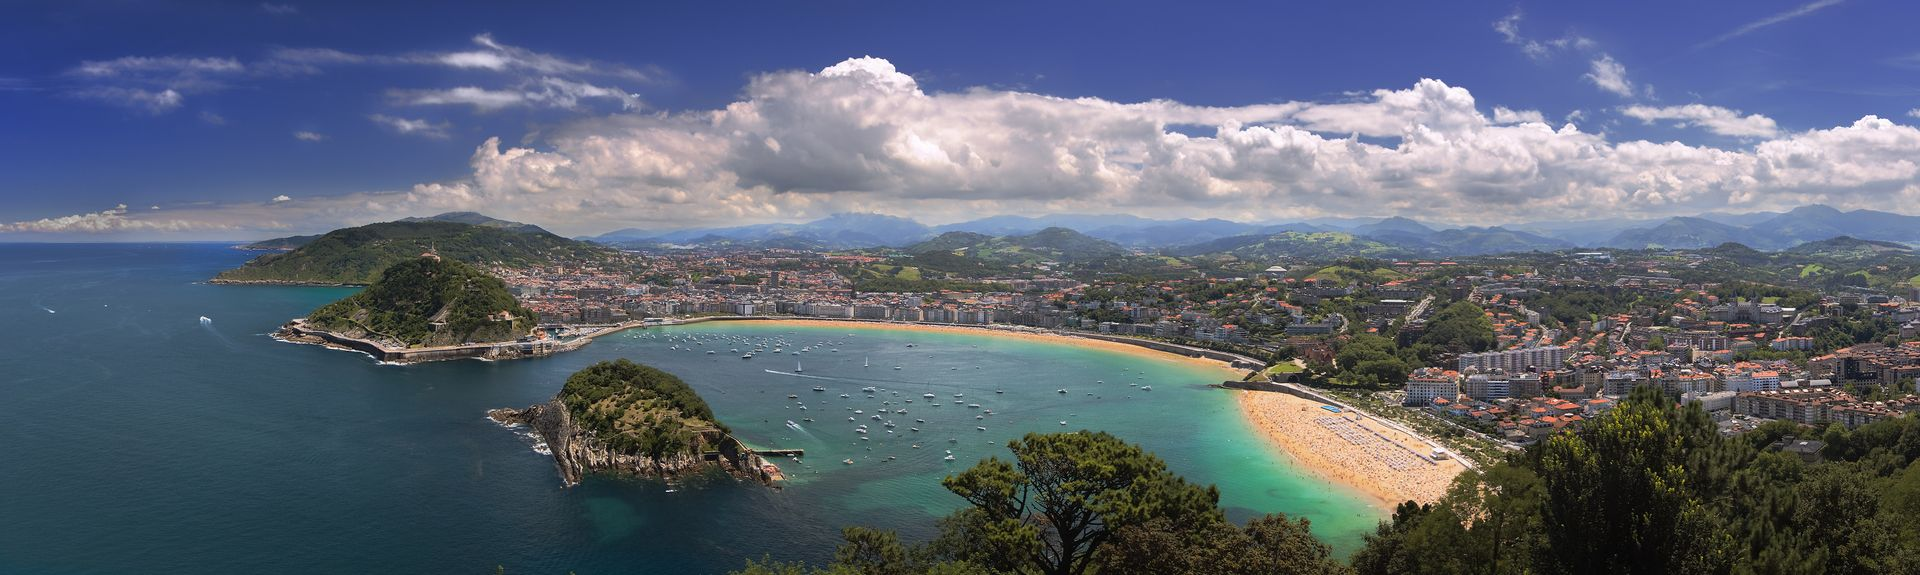 Hondarribia Beach, Hondarribia, Spain